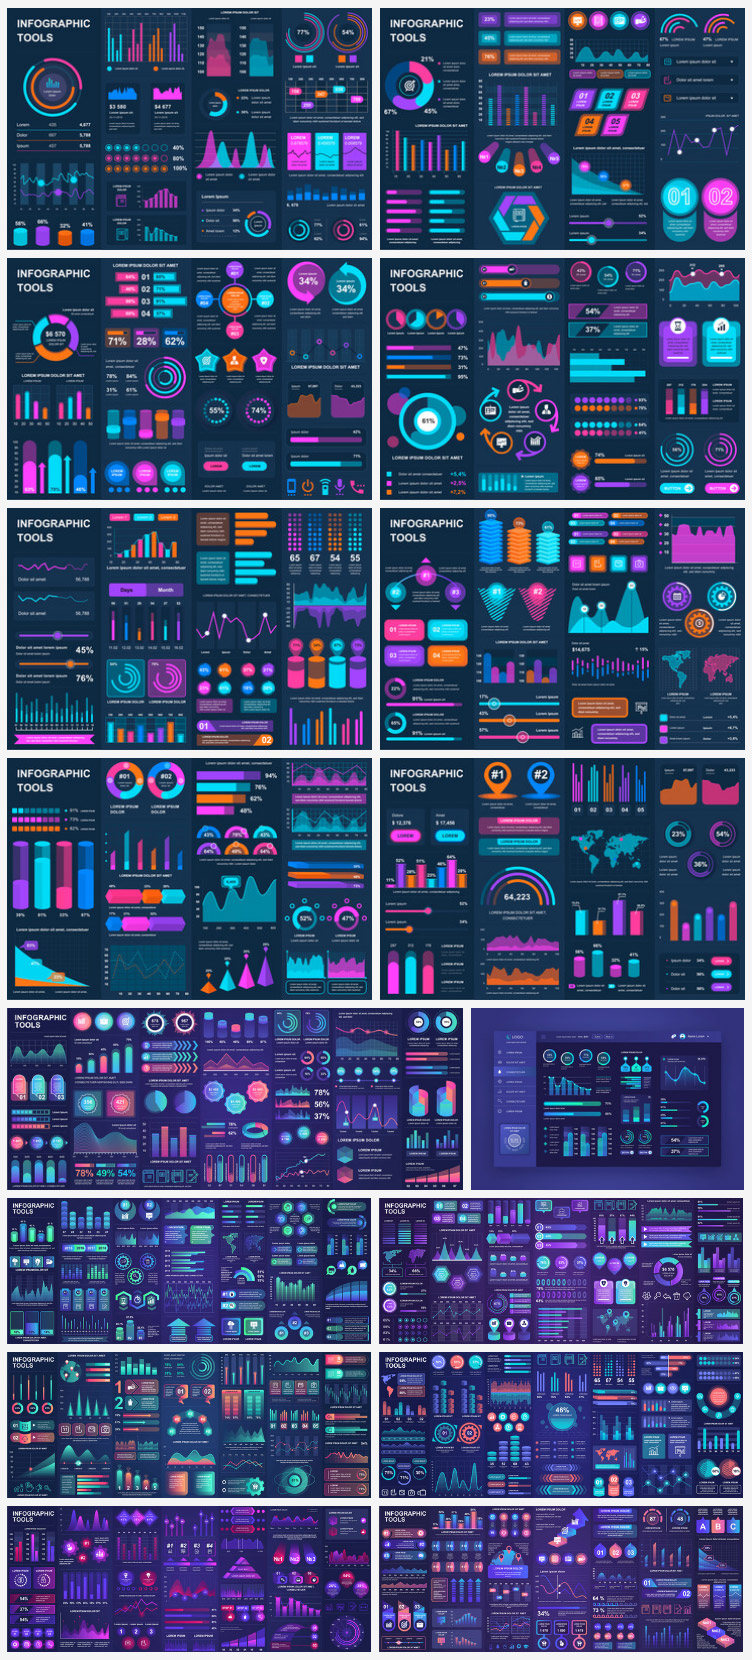 Infographic & Dashboard Vector Templates